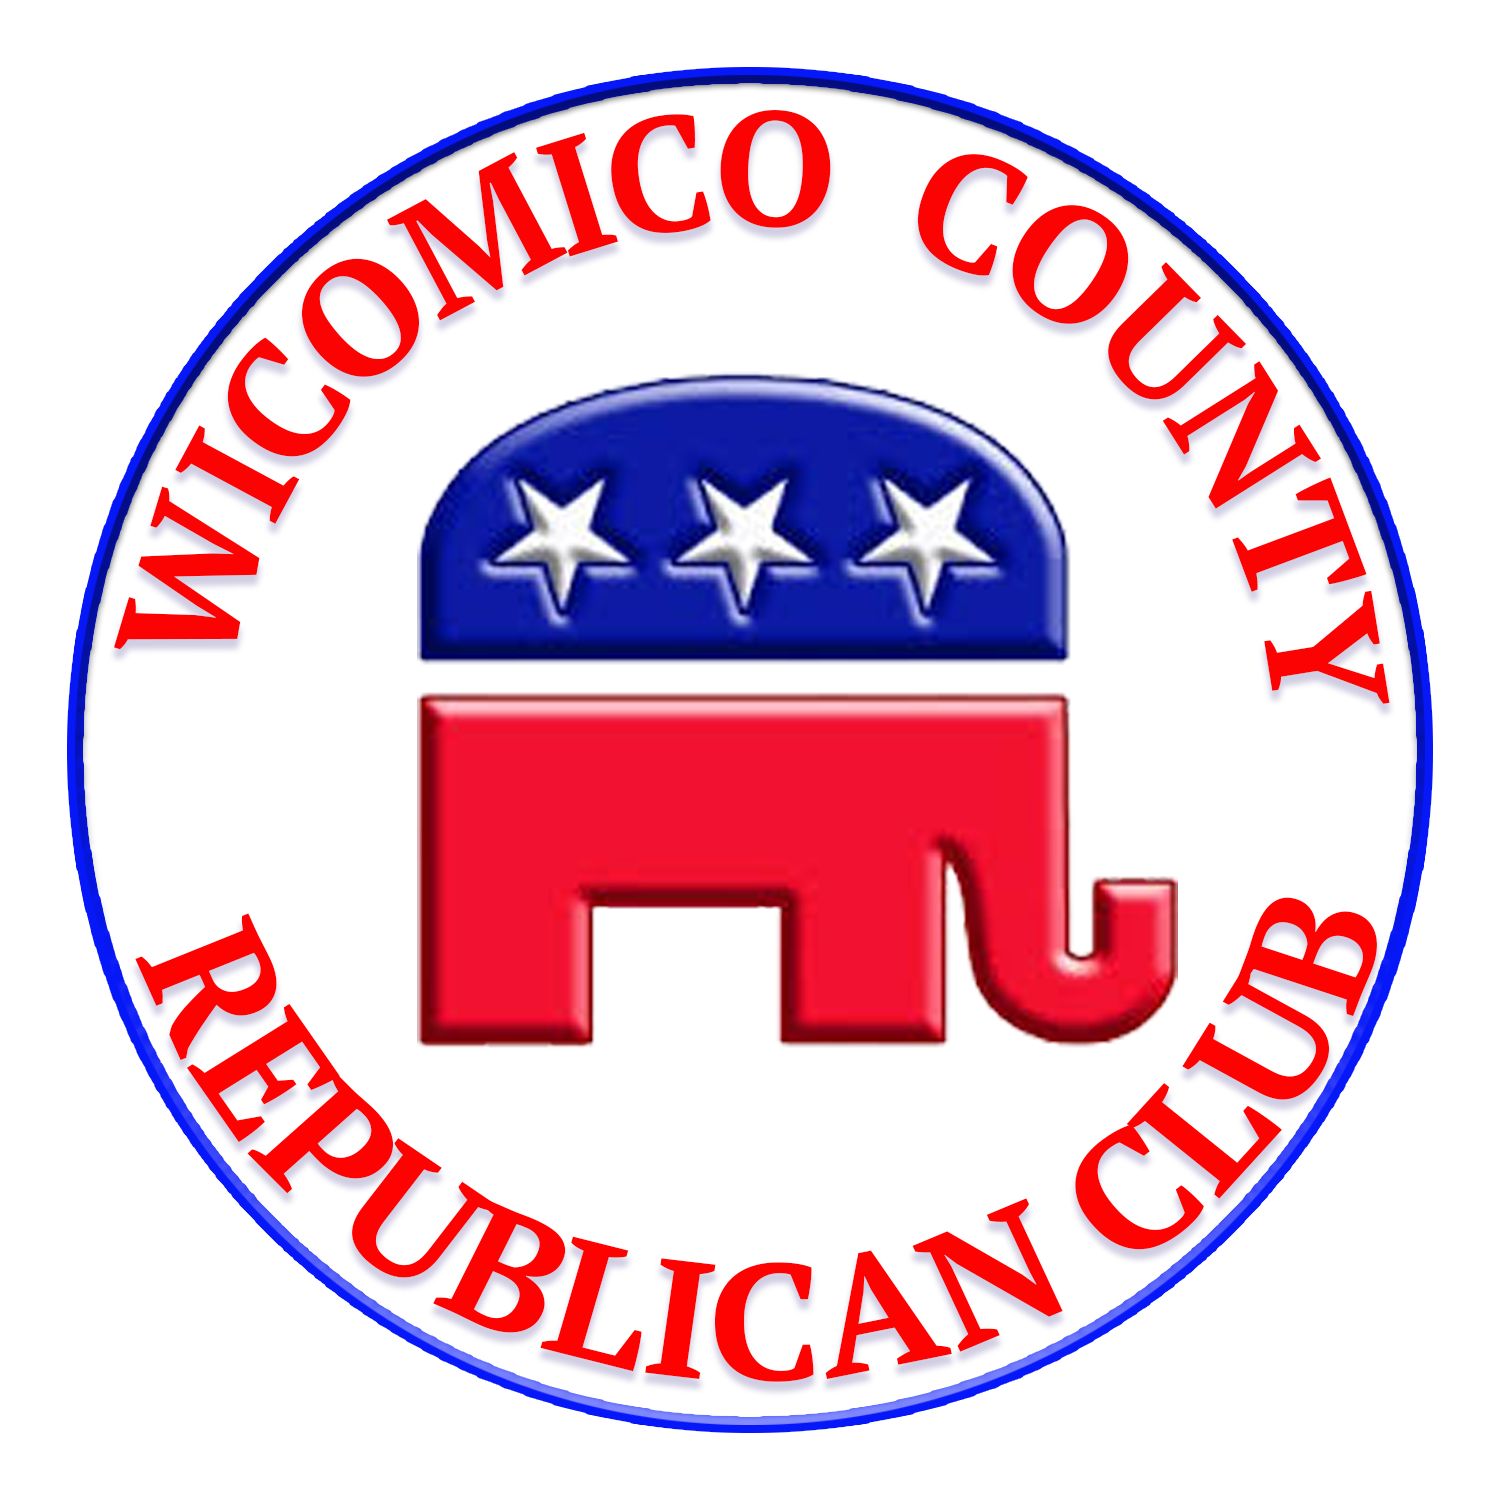 Wicomico County Republican Club